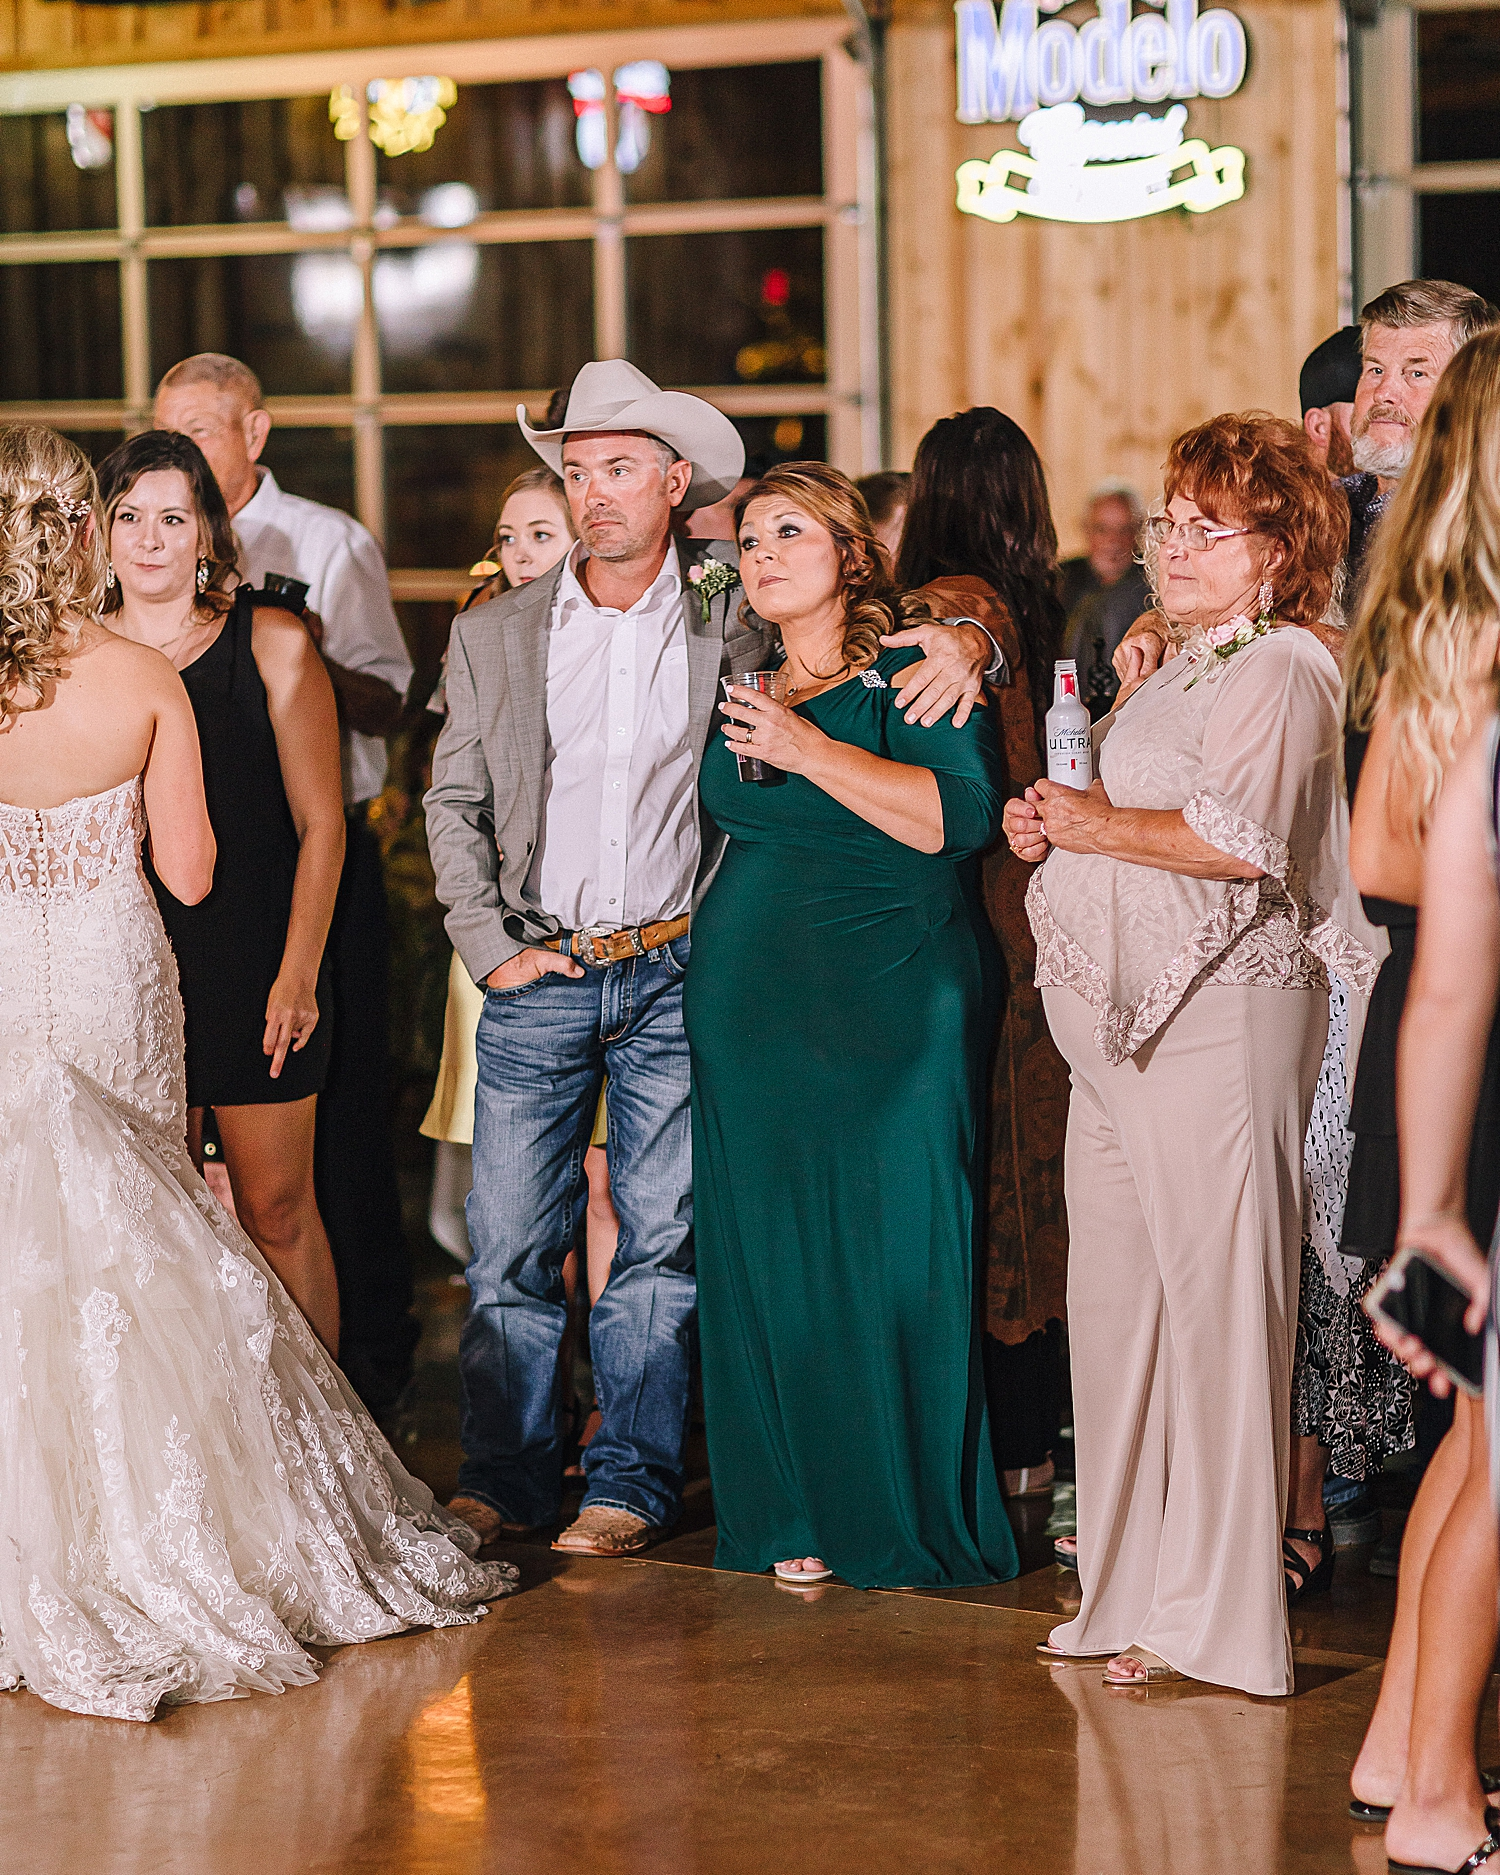 Rackler-Ranch-LaVernia-Texas-Wedding-Carly-Barton-Photography_0128.jpg